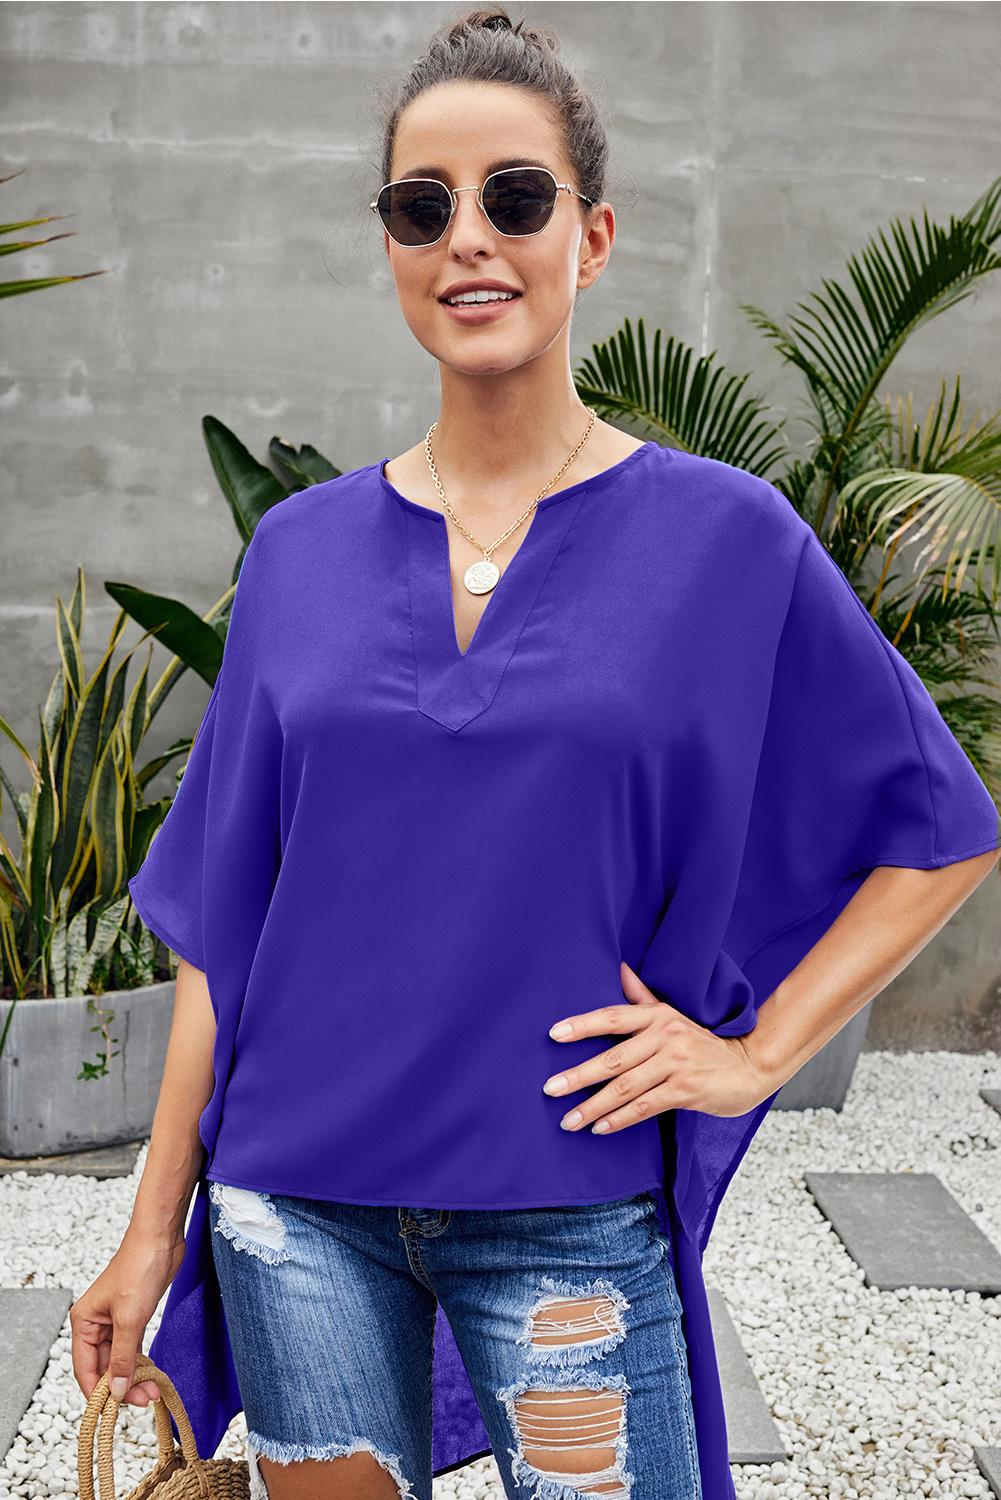 V-Neckline Stylish Shirt Her Fashion Blue Chic High Low Kimono Top